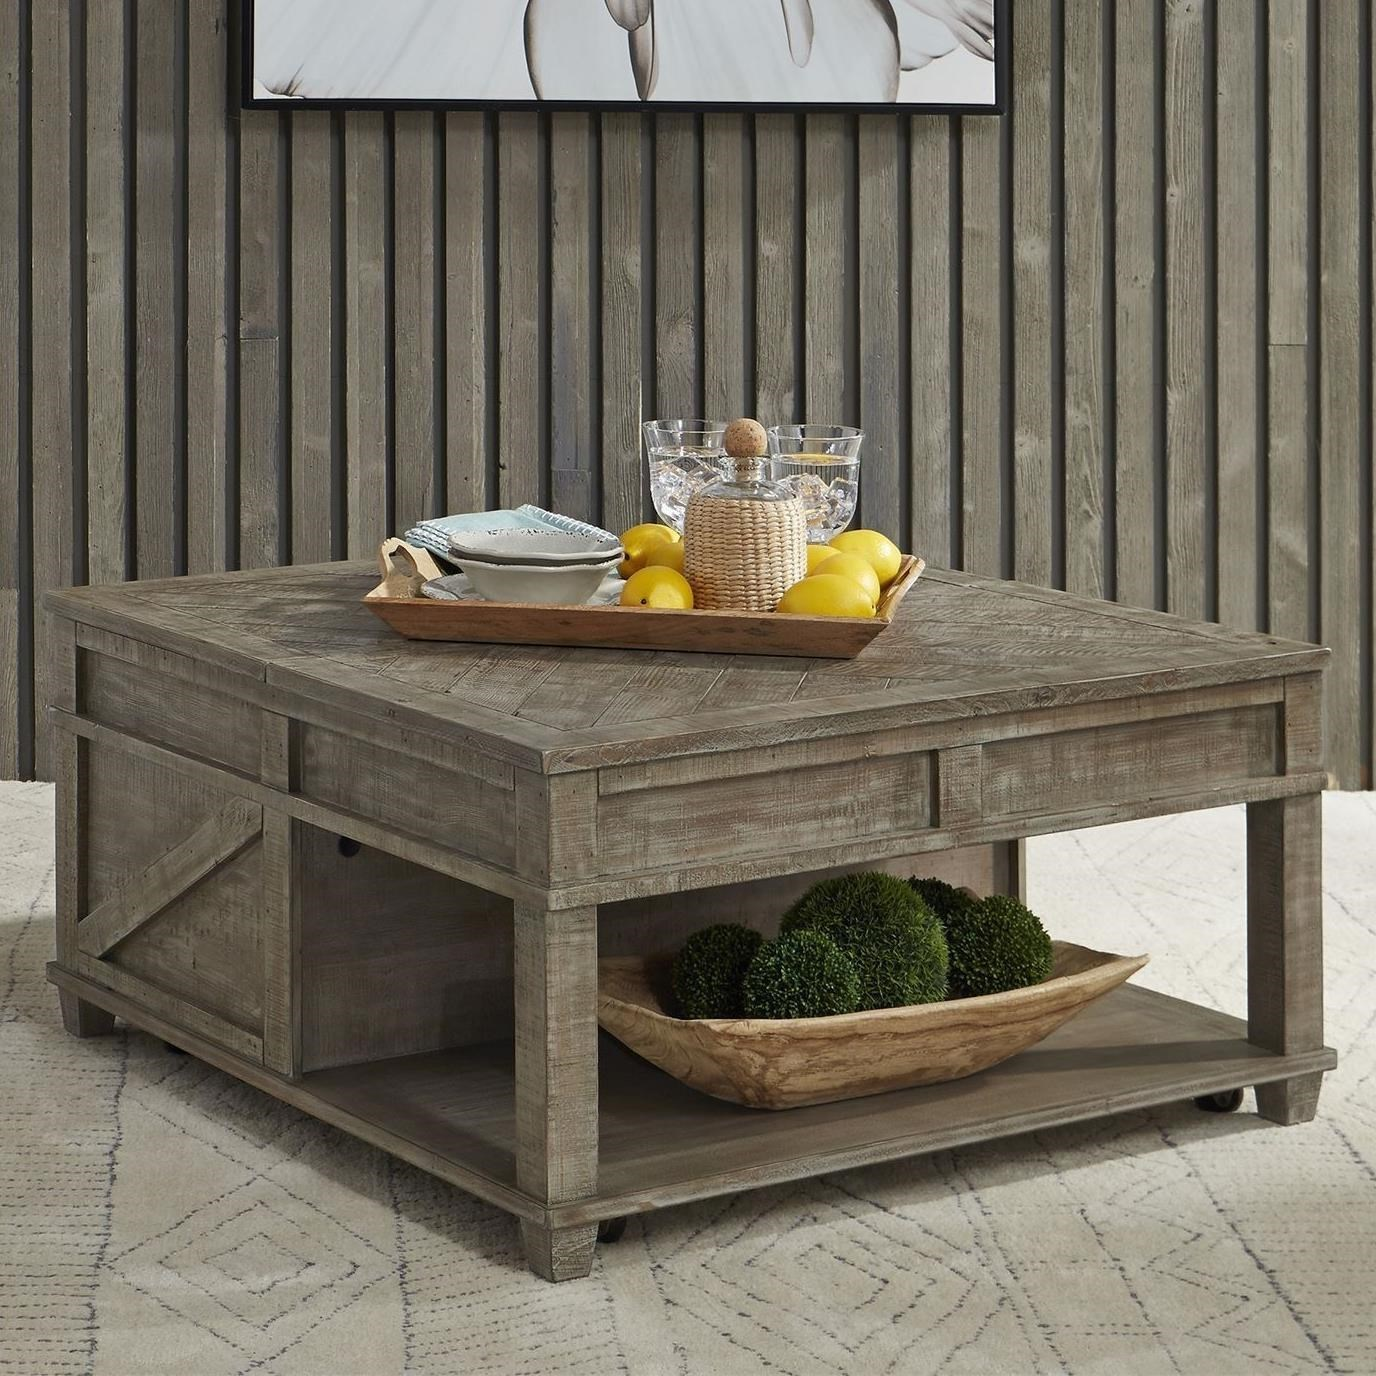 Freedom Furniture Parkland Falls Rustic Square Lift Top Cocktail Table With  Shelf Ruby Gordon Home Cocktail/Coffee Tables